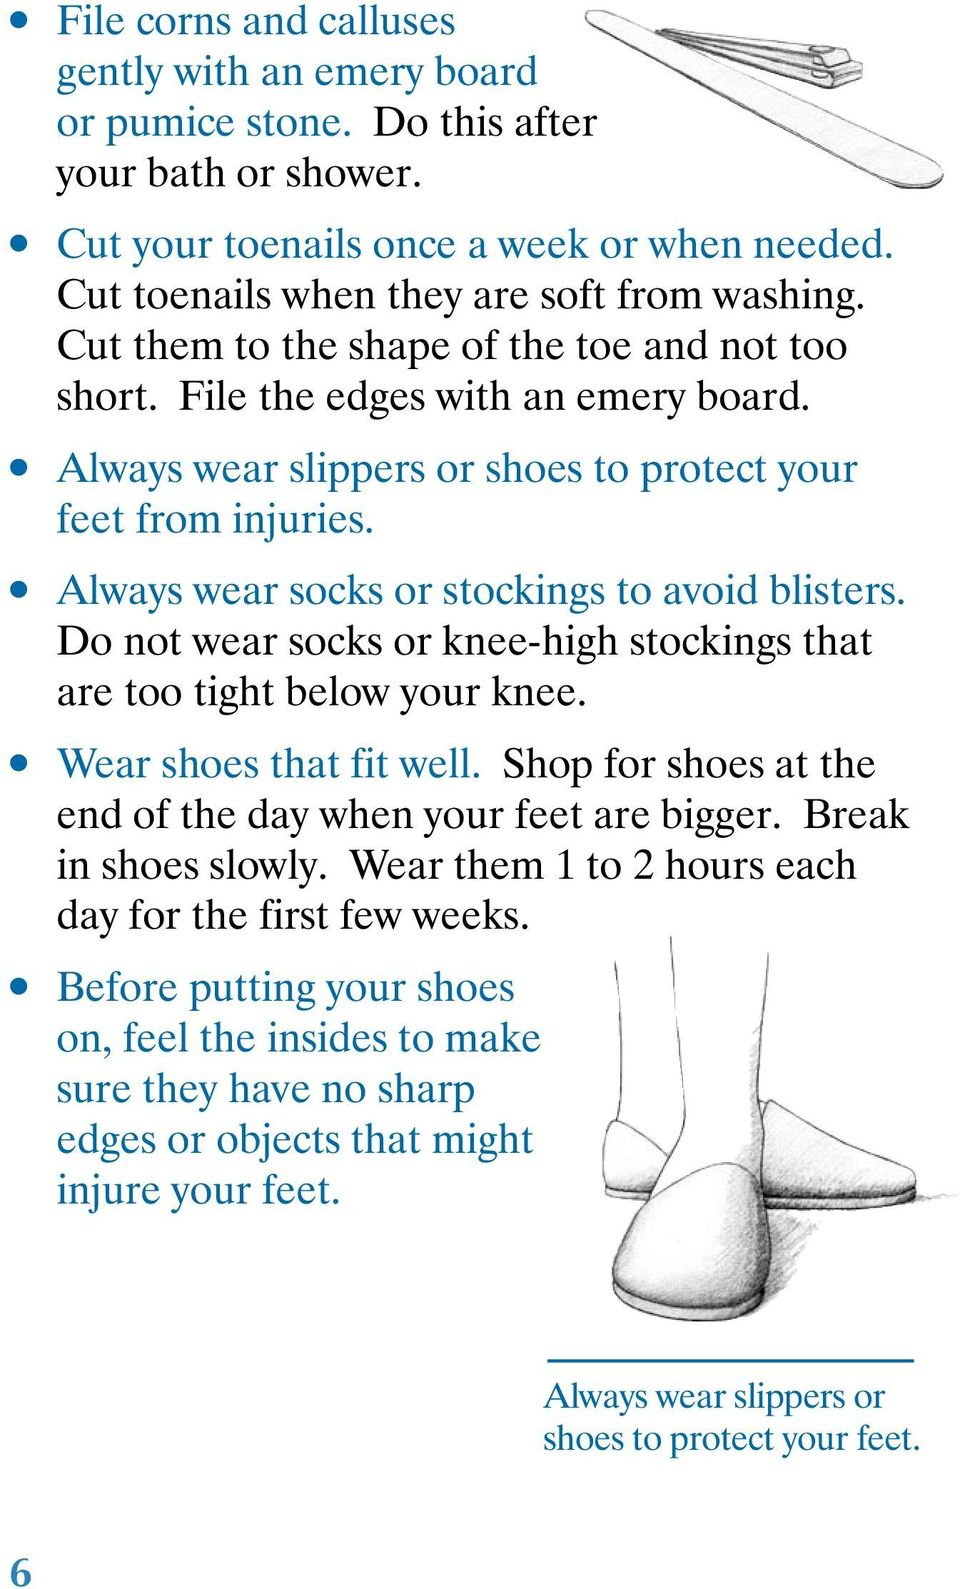 Always wear socks or stockings to avoid blisters. Do not wear socks or knee-high stockings that are too tight below your knee. Wear shoes that fit well.